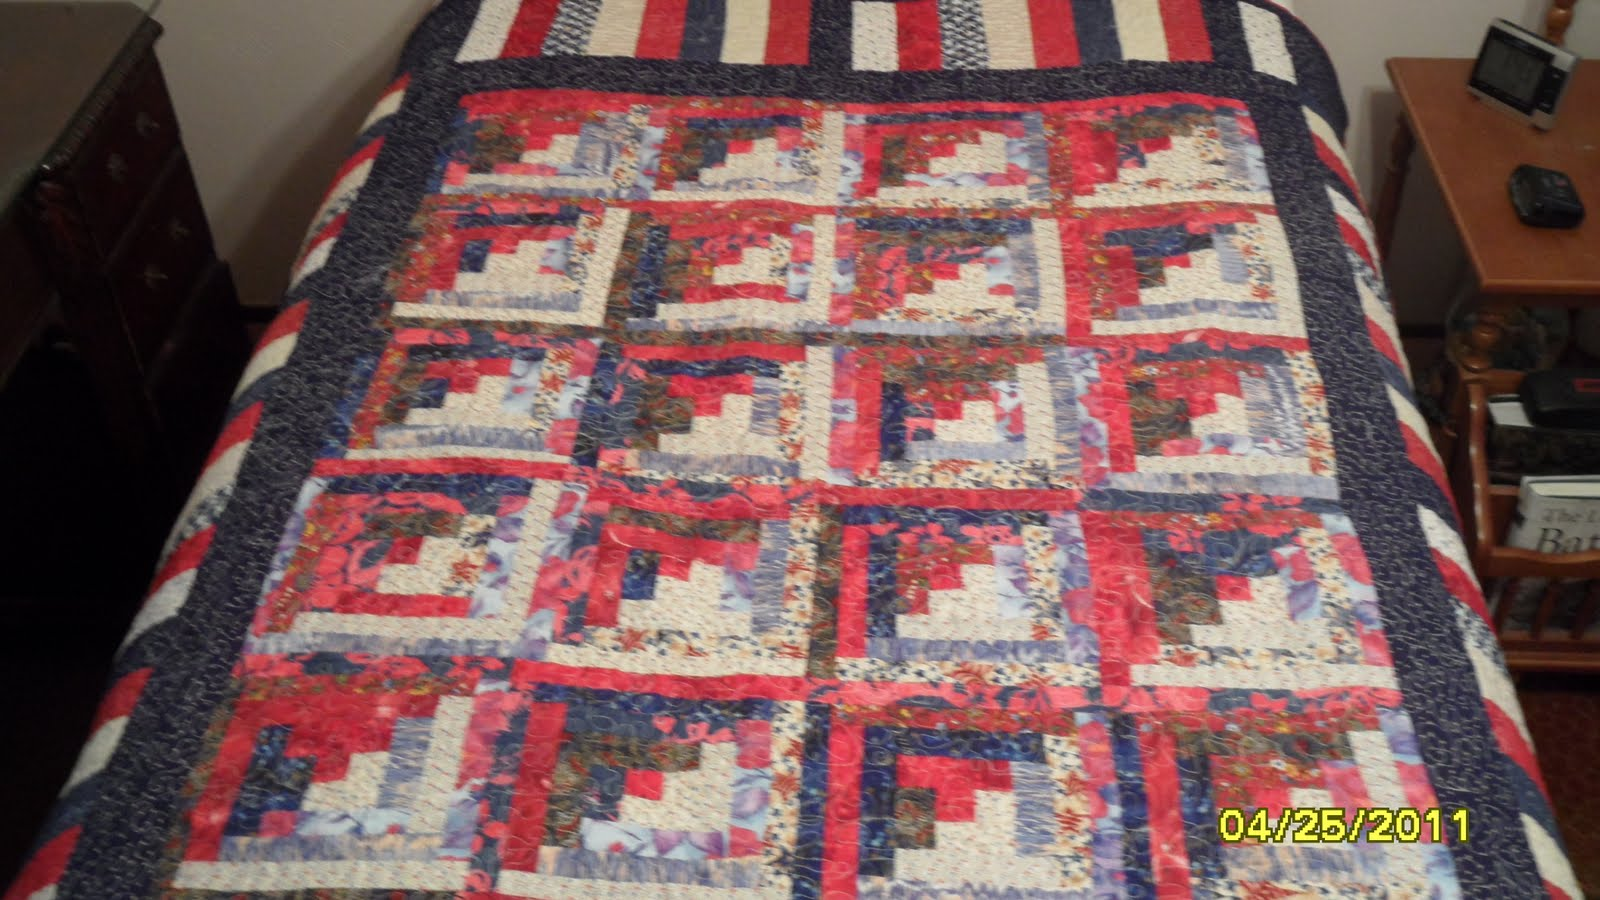 Beau I Do Like My Red, White And Blue Quilts It Seems. This One Is In A Traditional  Log Cabin Pattern. Some Of The Fabric Came From A Selection Of Fat Quarters  ...